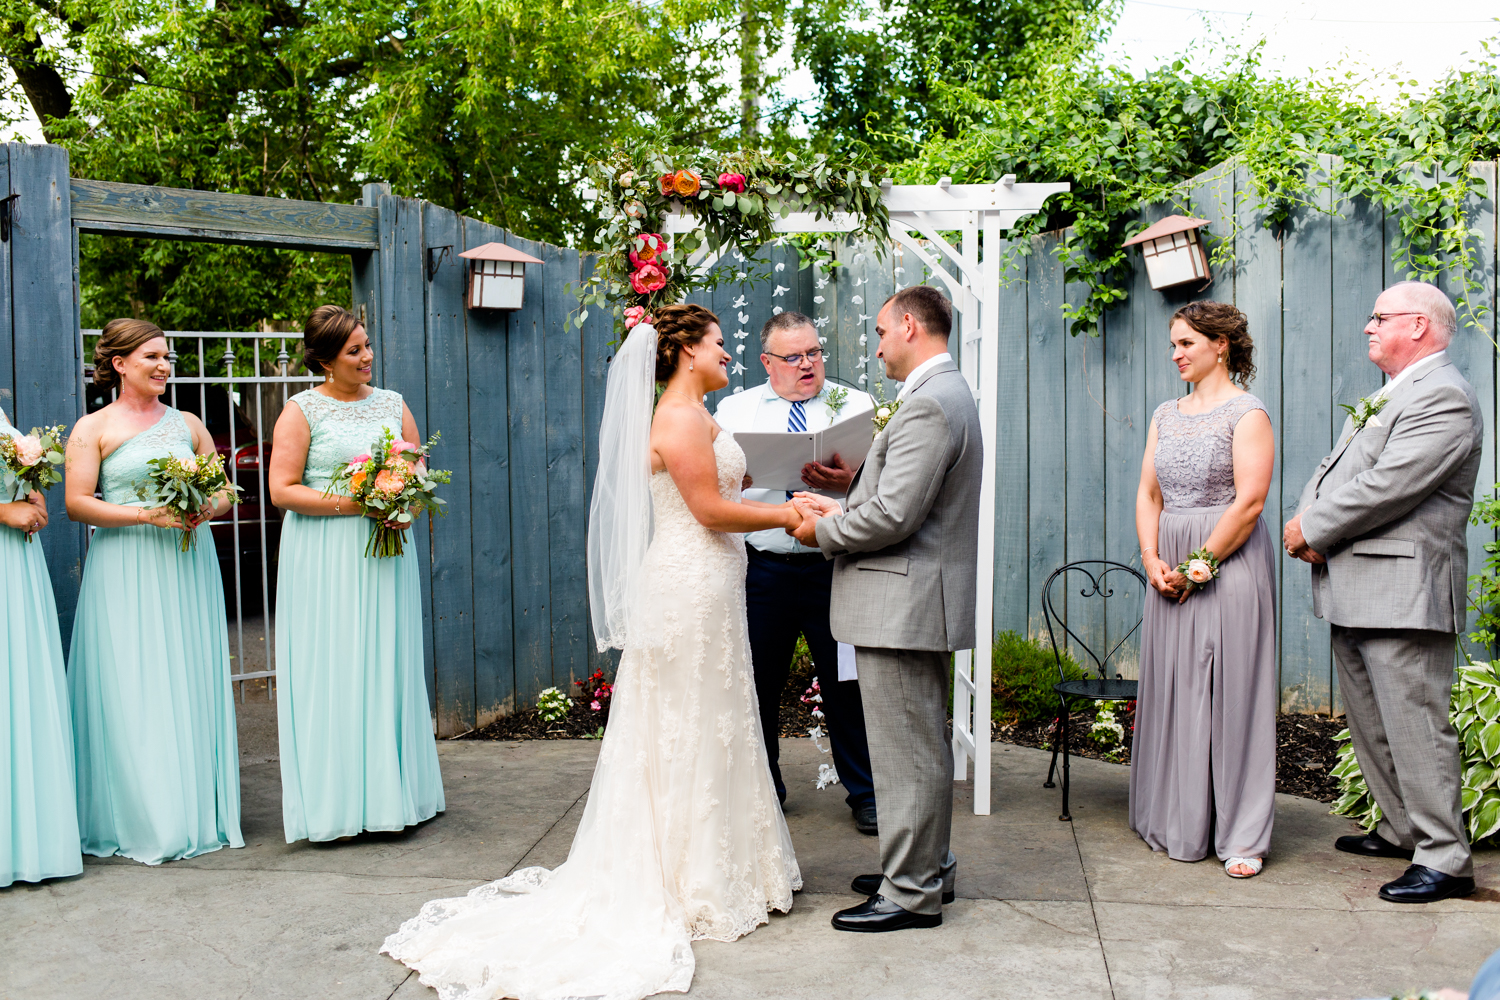 Bride and groom stand facing each other during the ceremony.